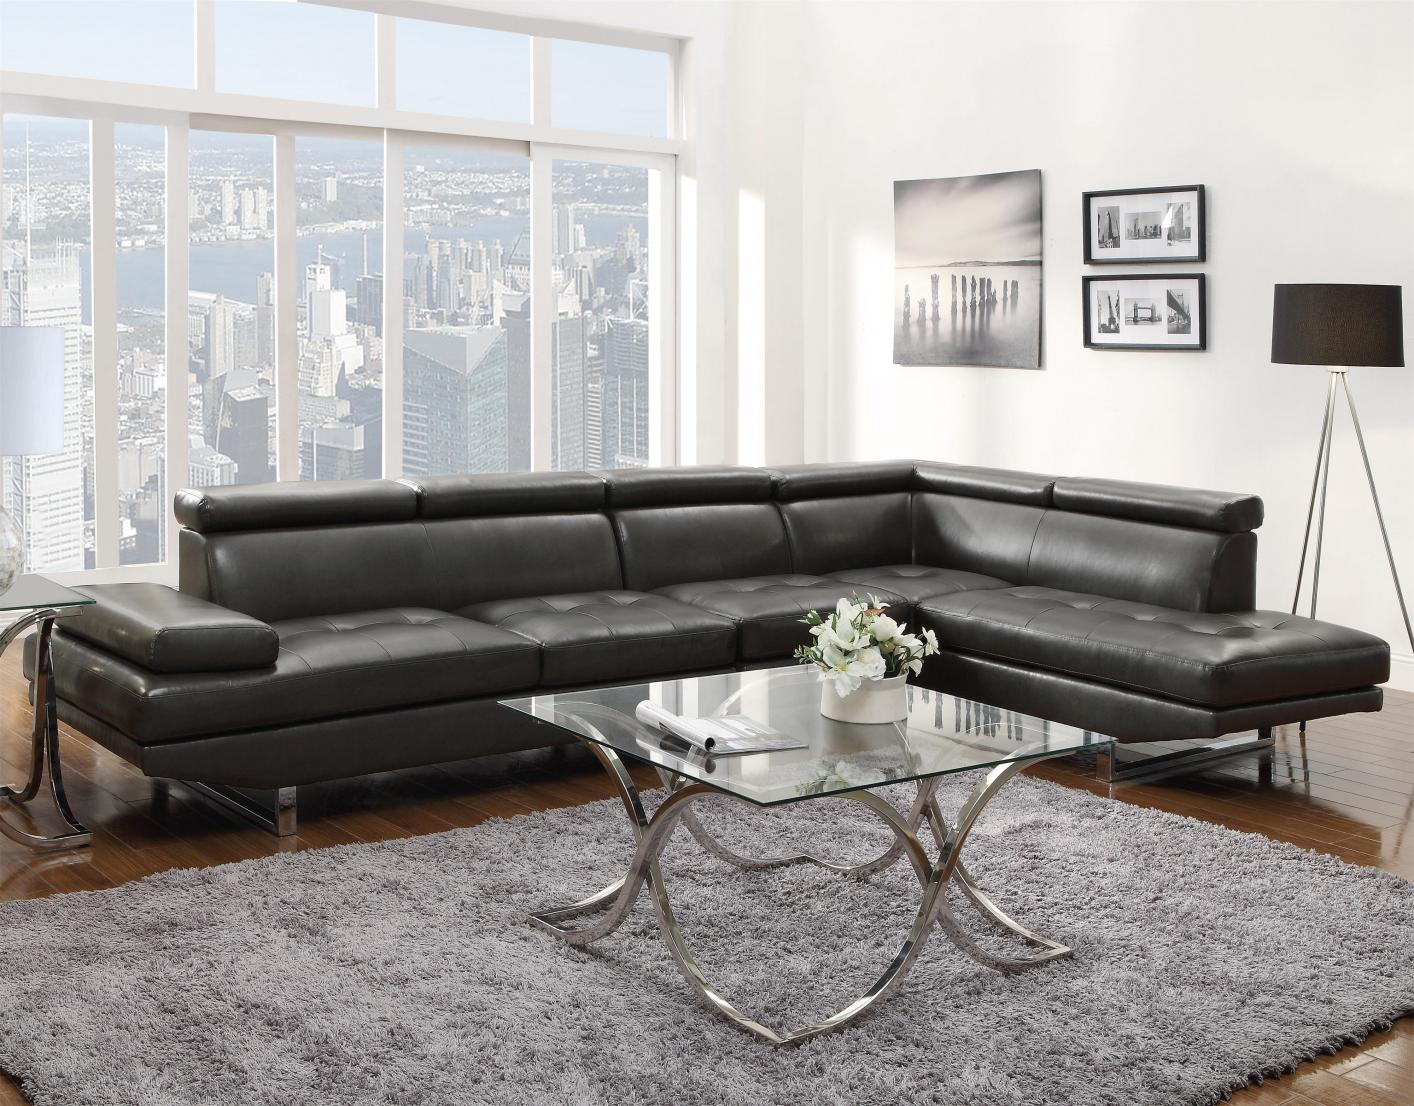 Grey Leather Sectional Sofa StealASofa Furniture Outlet Los - Gray leather sectional sofas